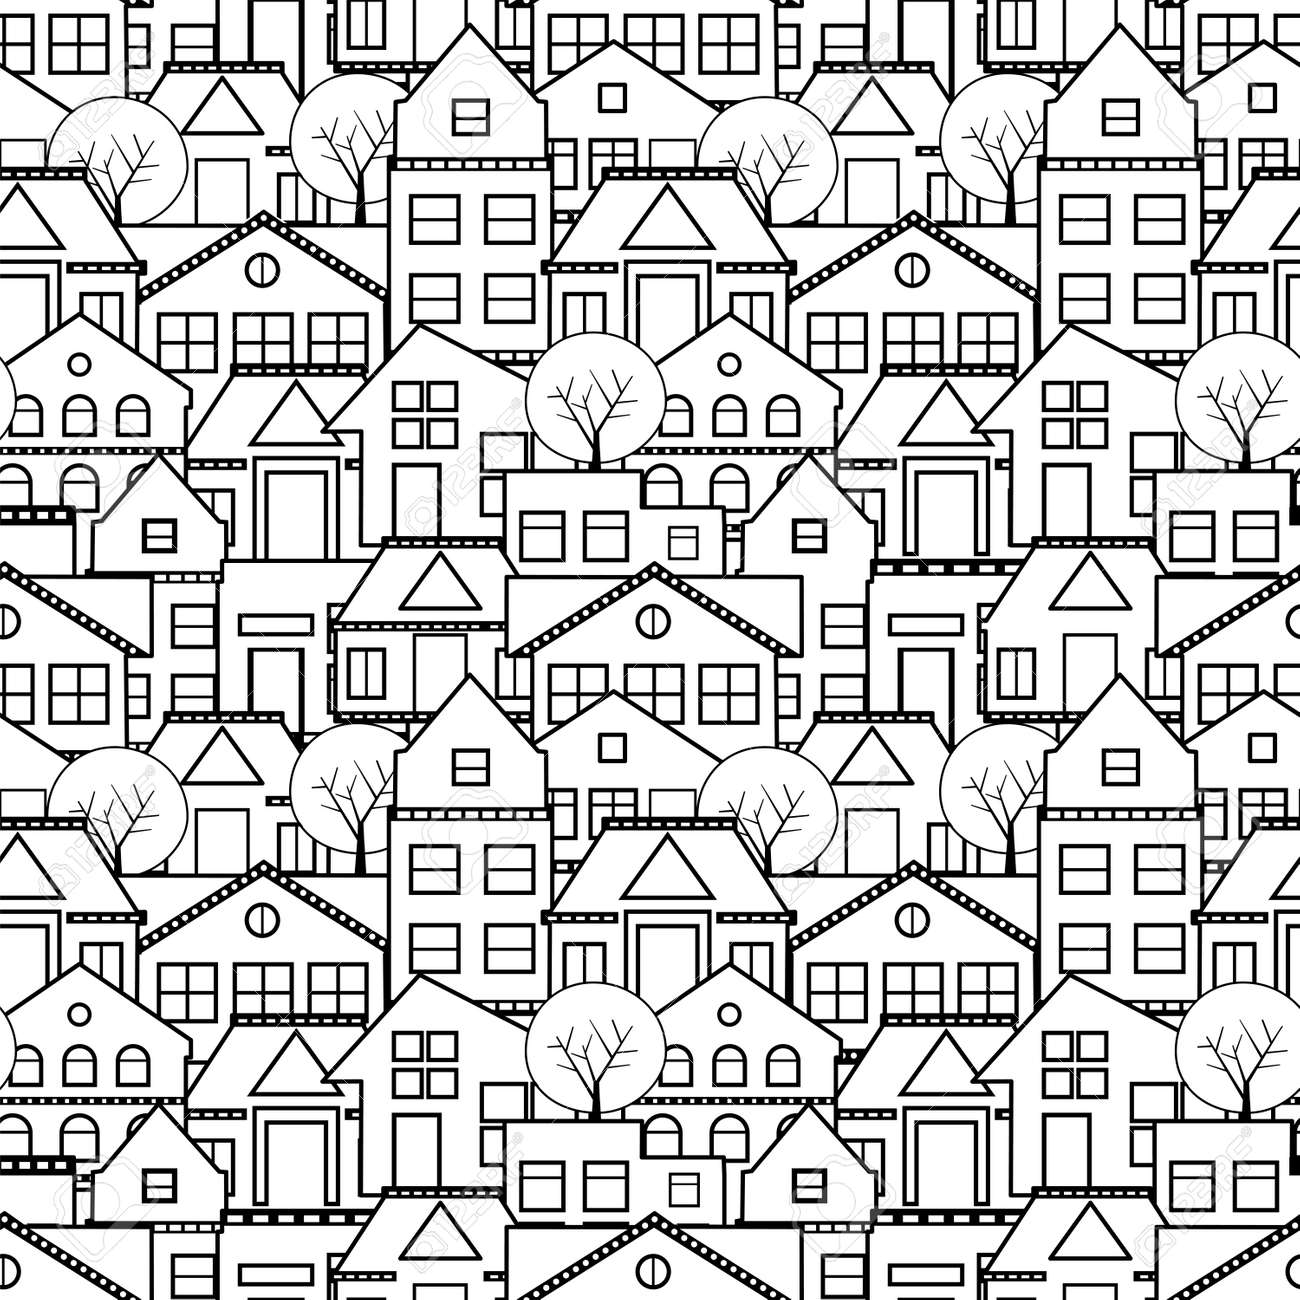 Anti Stress Coloring Book Painting For Relaxation Seamless Sketch Town Drawing The City